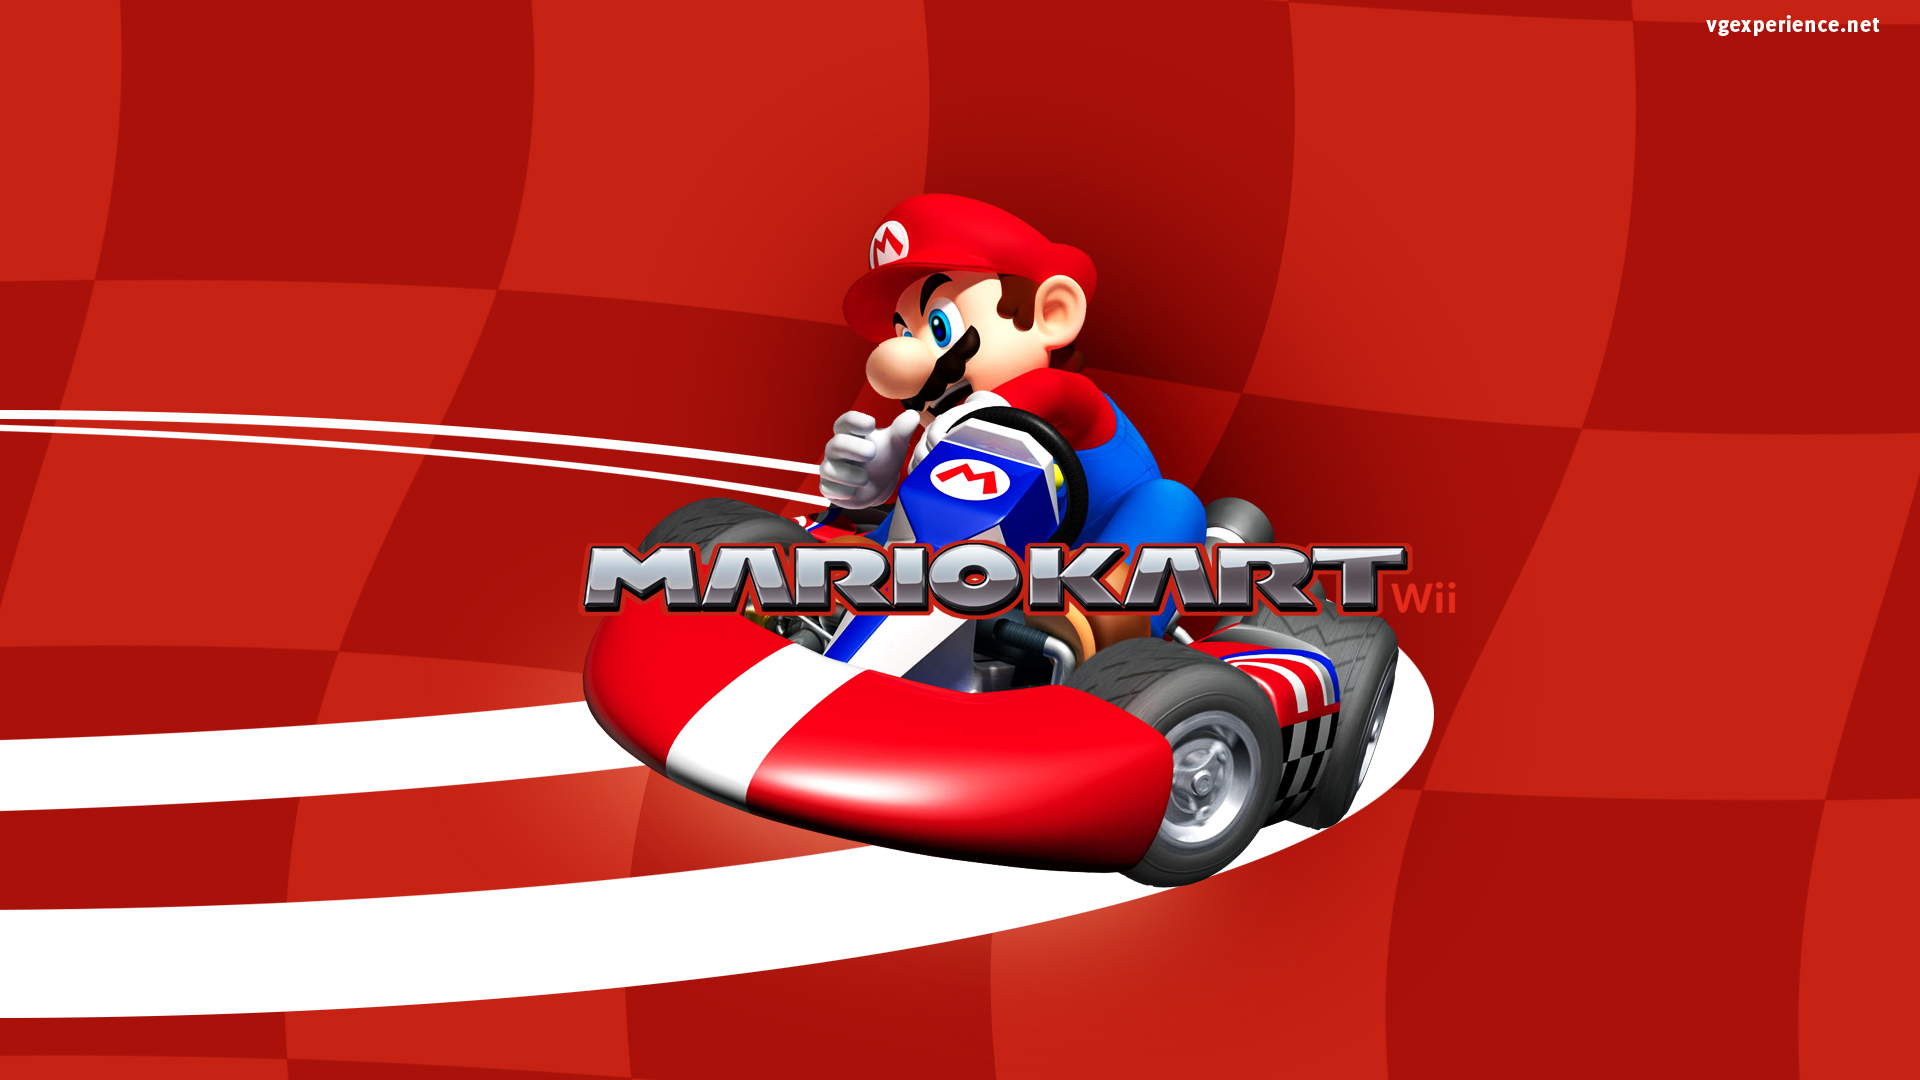 Mario Kart 8 Background: Mario Kart Wii Wallpaper